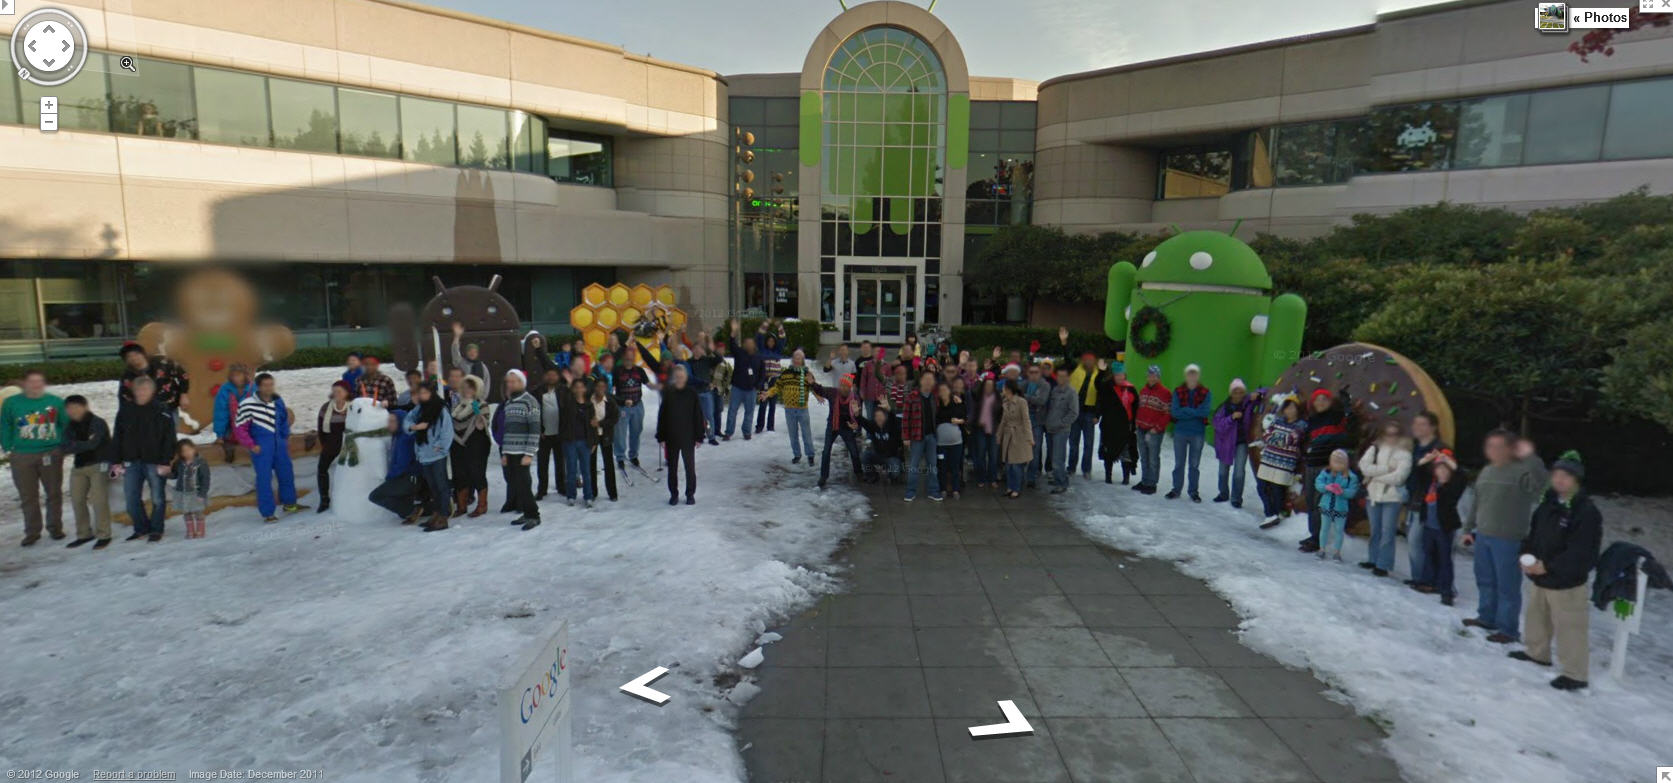 google-street-view-captures-the-android-team-on-a-snow-day-in-california